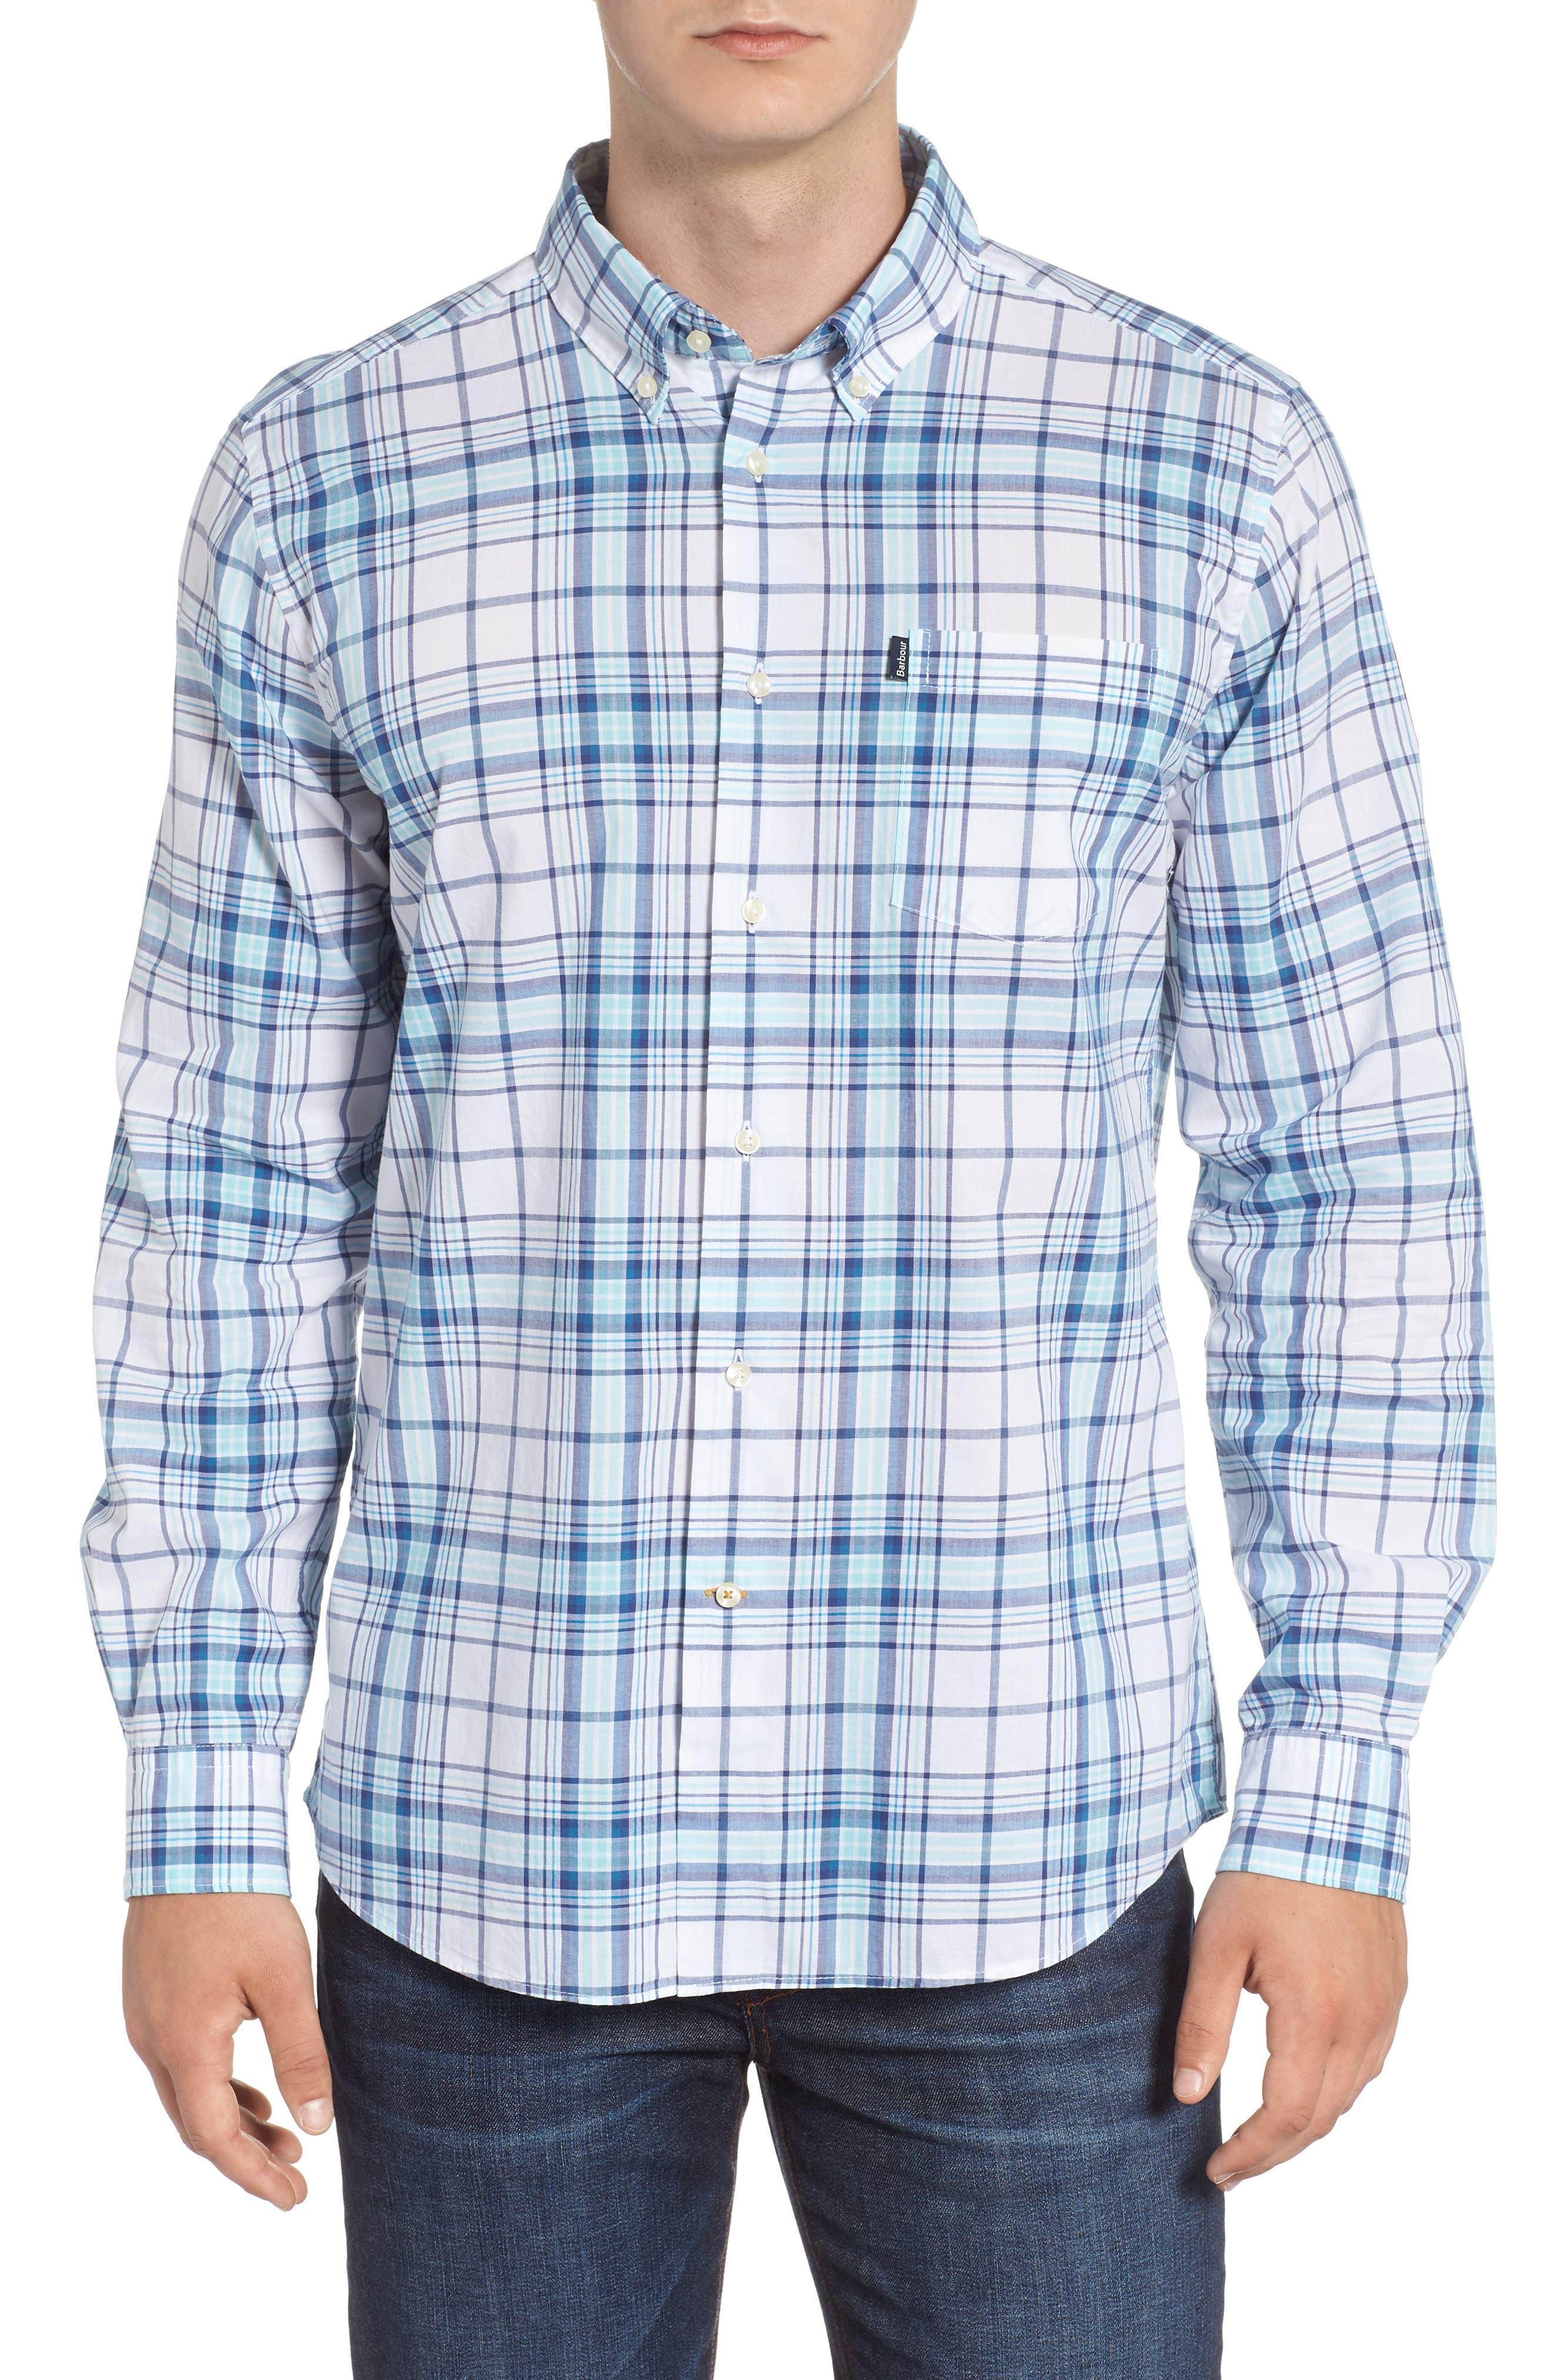 Christopher Tailored Fit Plaid Sport Shirt,                         Main,                         color, 440